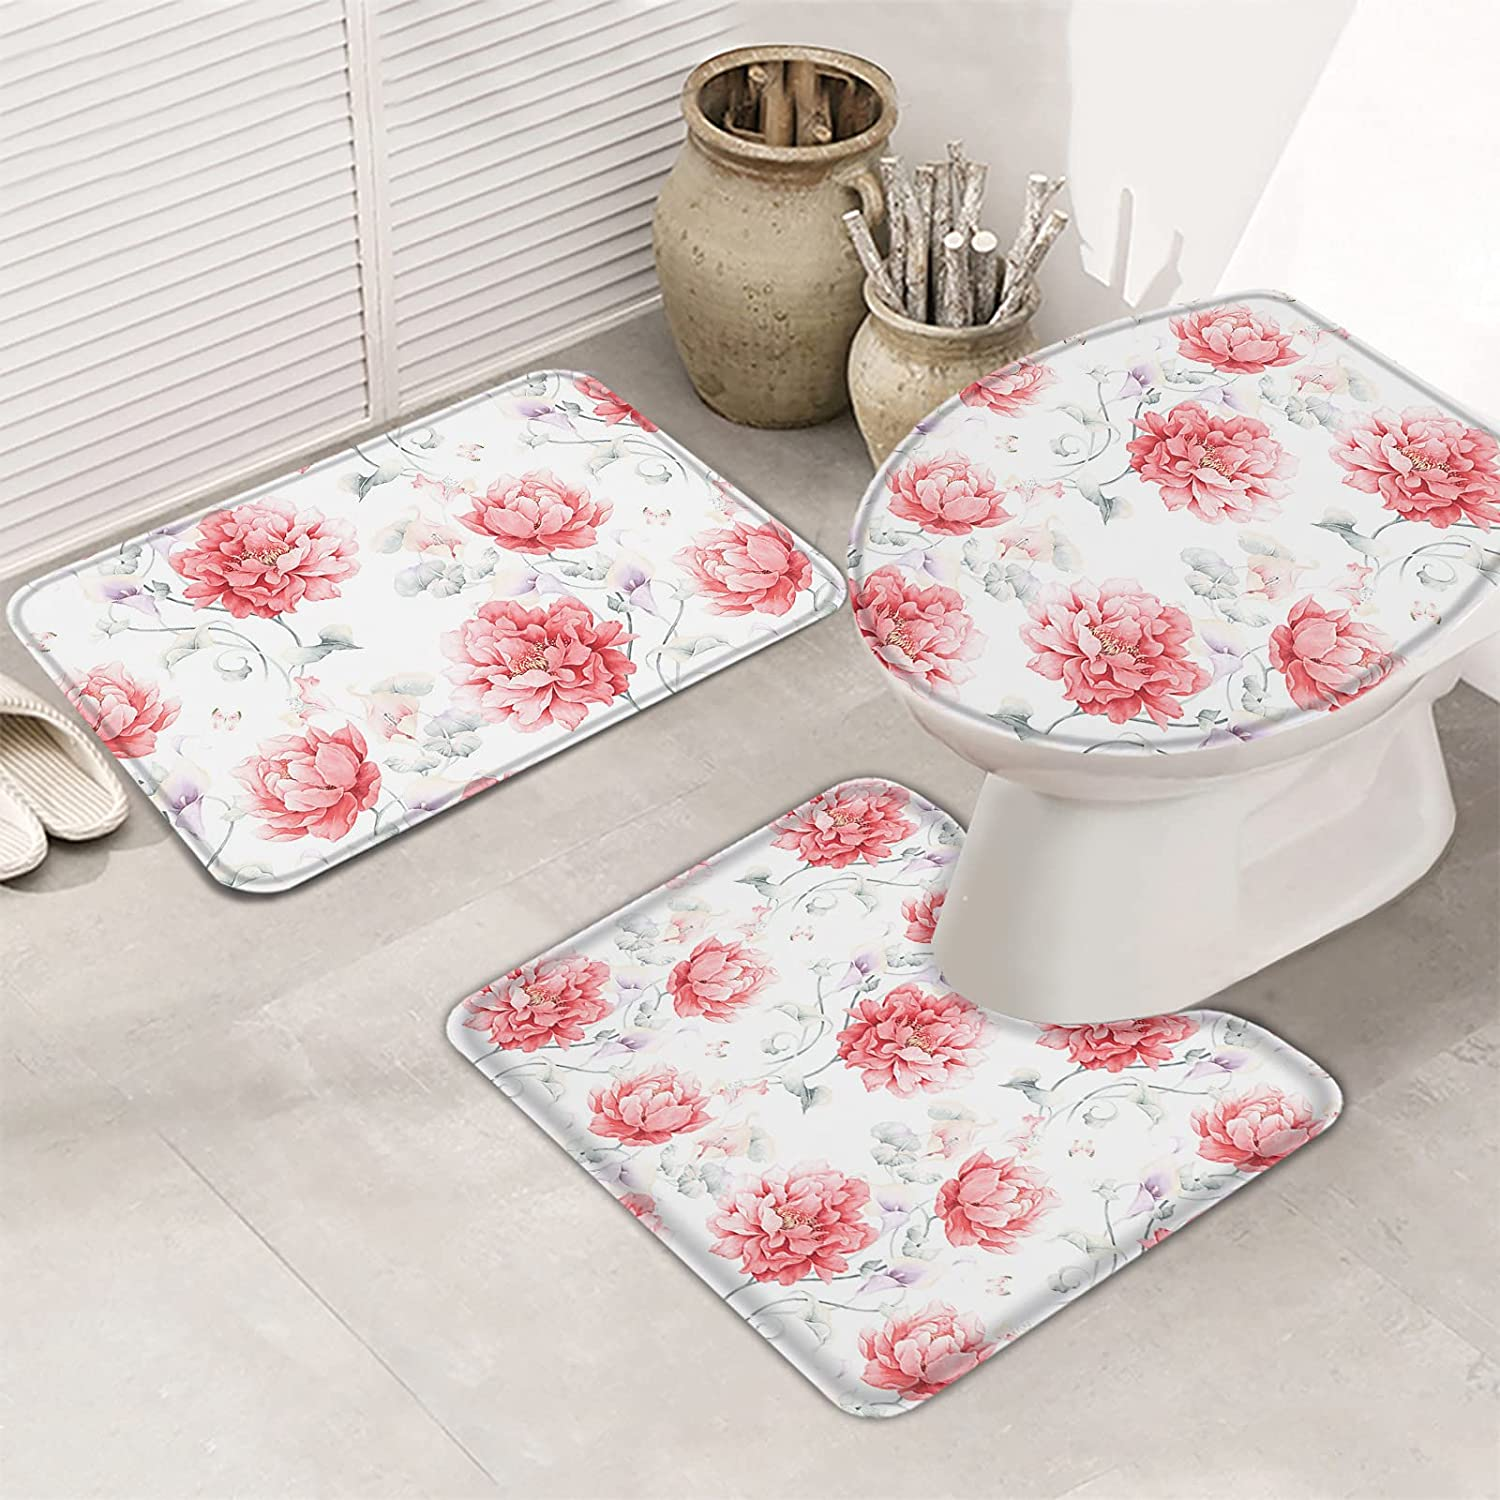 MUSEDAY 3 Pieces Bathroom Rugs Set Non National products Absorbent Mats Slip Pin Price reduction